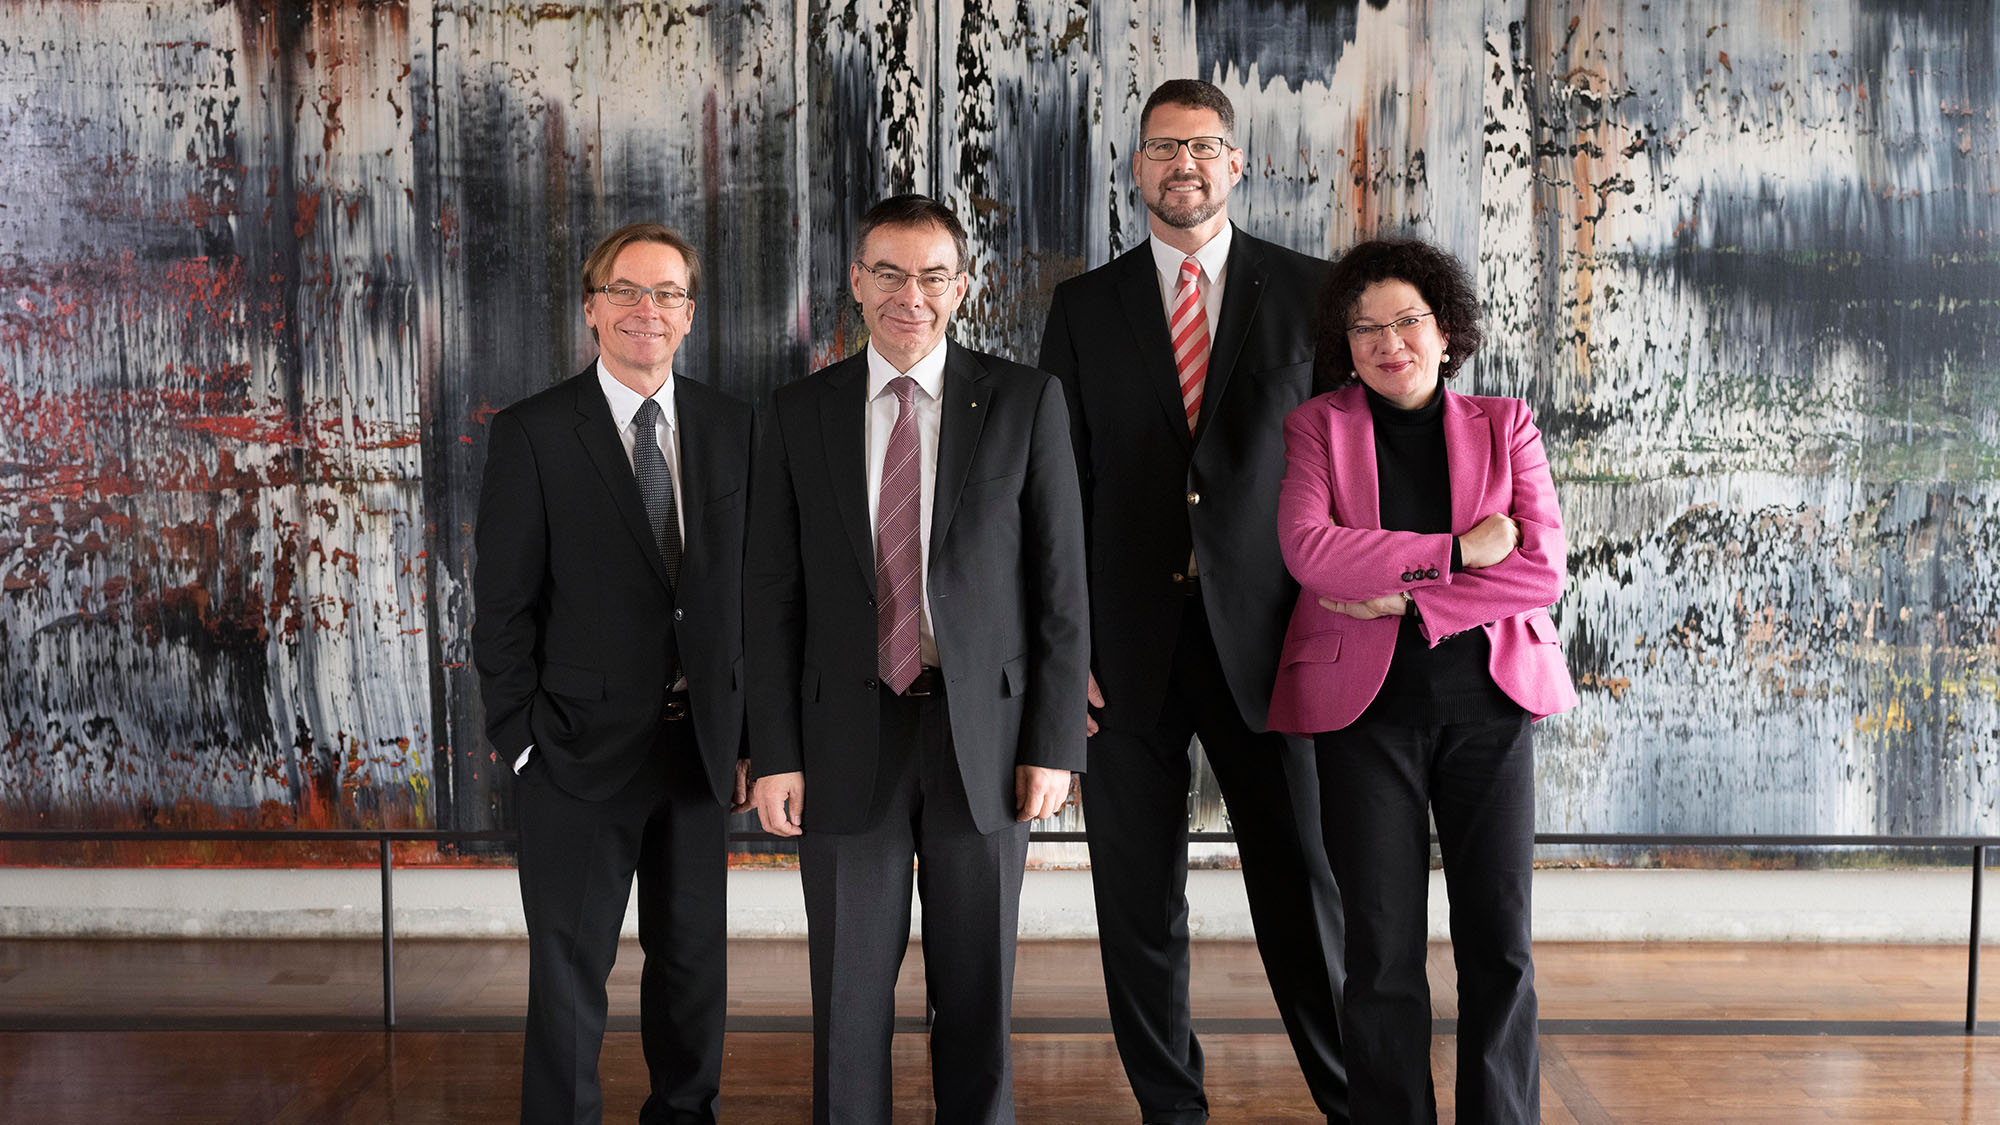 from left: Kuno Schedler, Thomas Bieger, Lukas Gschwend and Ulrike Landfester